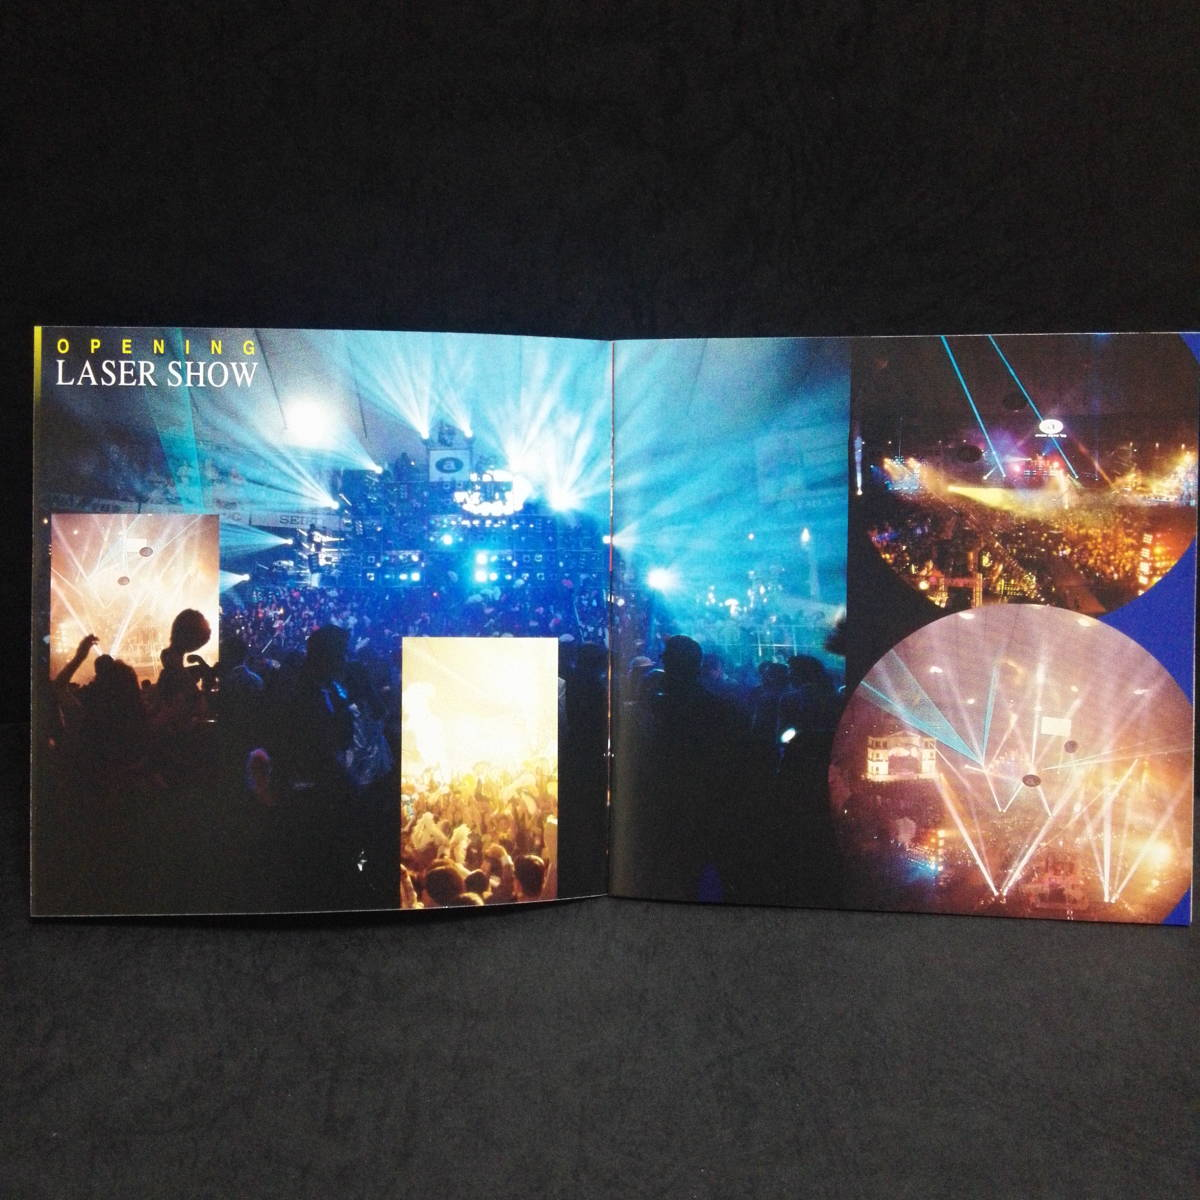 avex rave 93 LIVE in Tokyo Dome 帯付 全16曲LIVE 音源CD ジュリアナテクノ イタロ 90s DISCO JHON ROBINSON trf Maximizor L.A.STYLE_画像6